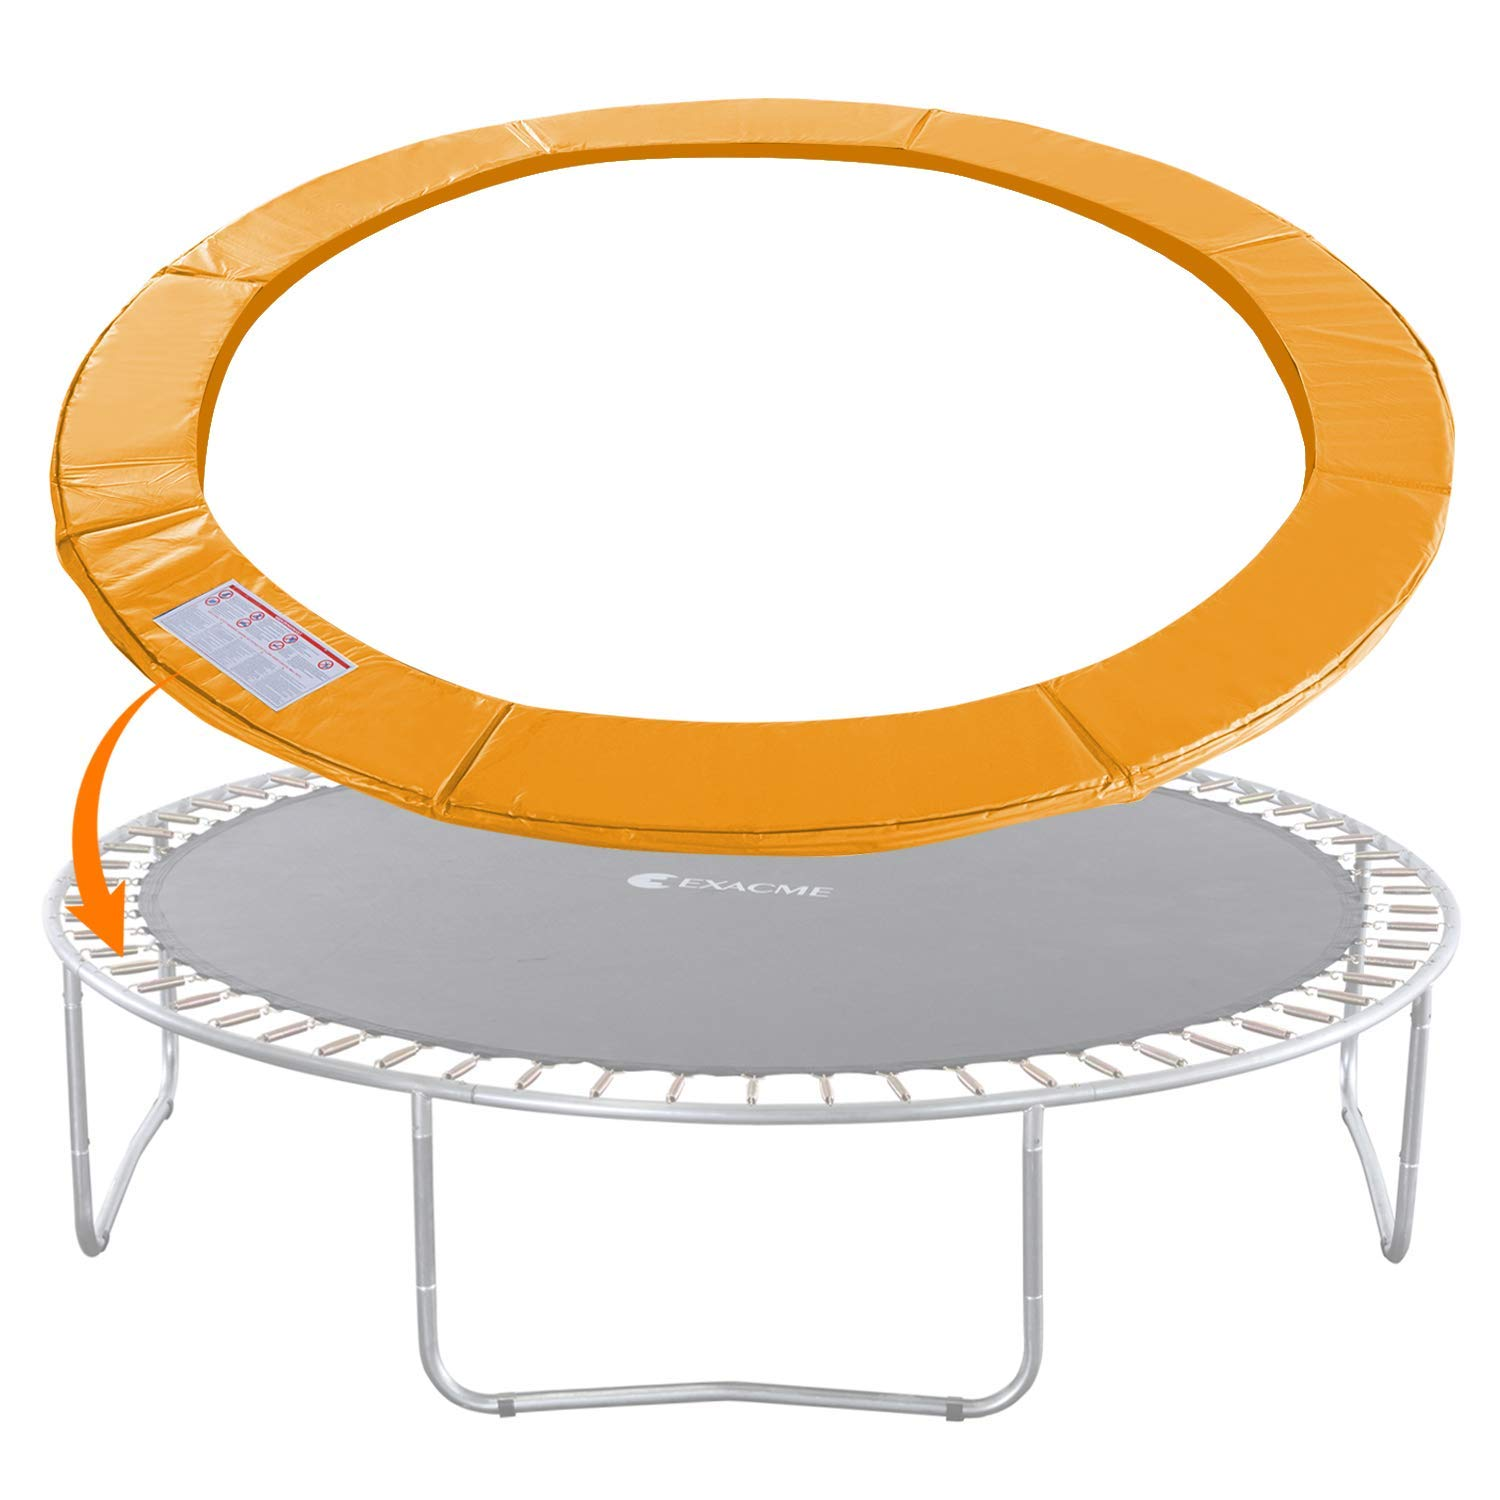 Exacme Trampoline Replacement Safety Pad Round Spring Cover, No Slots (Orange, 14 Foot) (Renewed) by Exacme